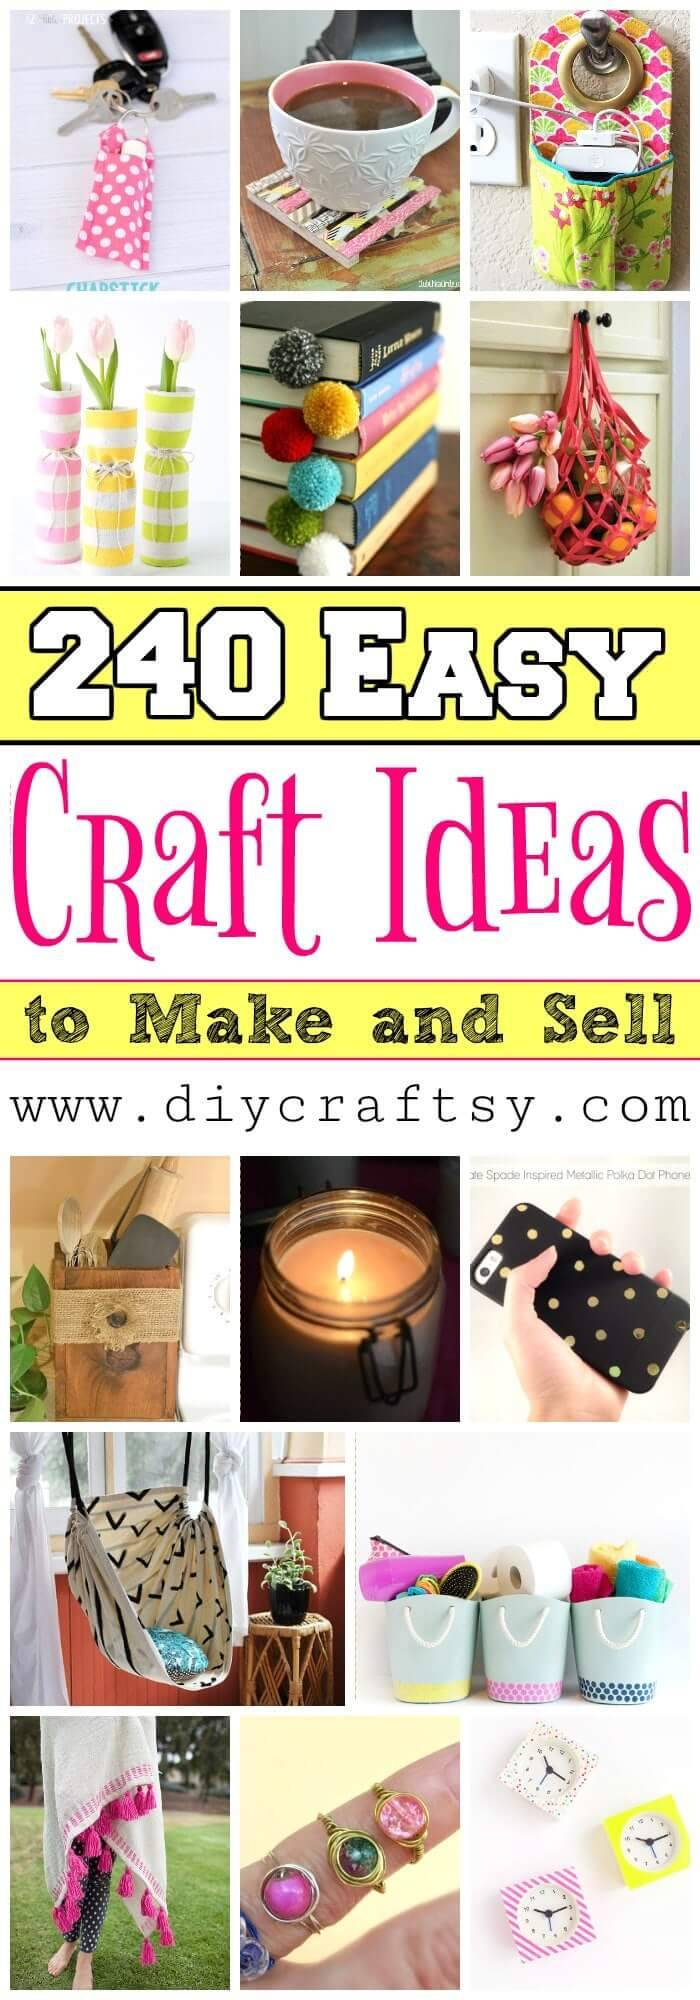 240 easy craft ideas to make and sell diy crafts for Crafts to make and sell for profit